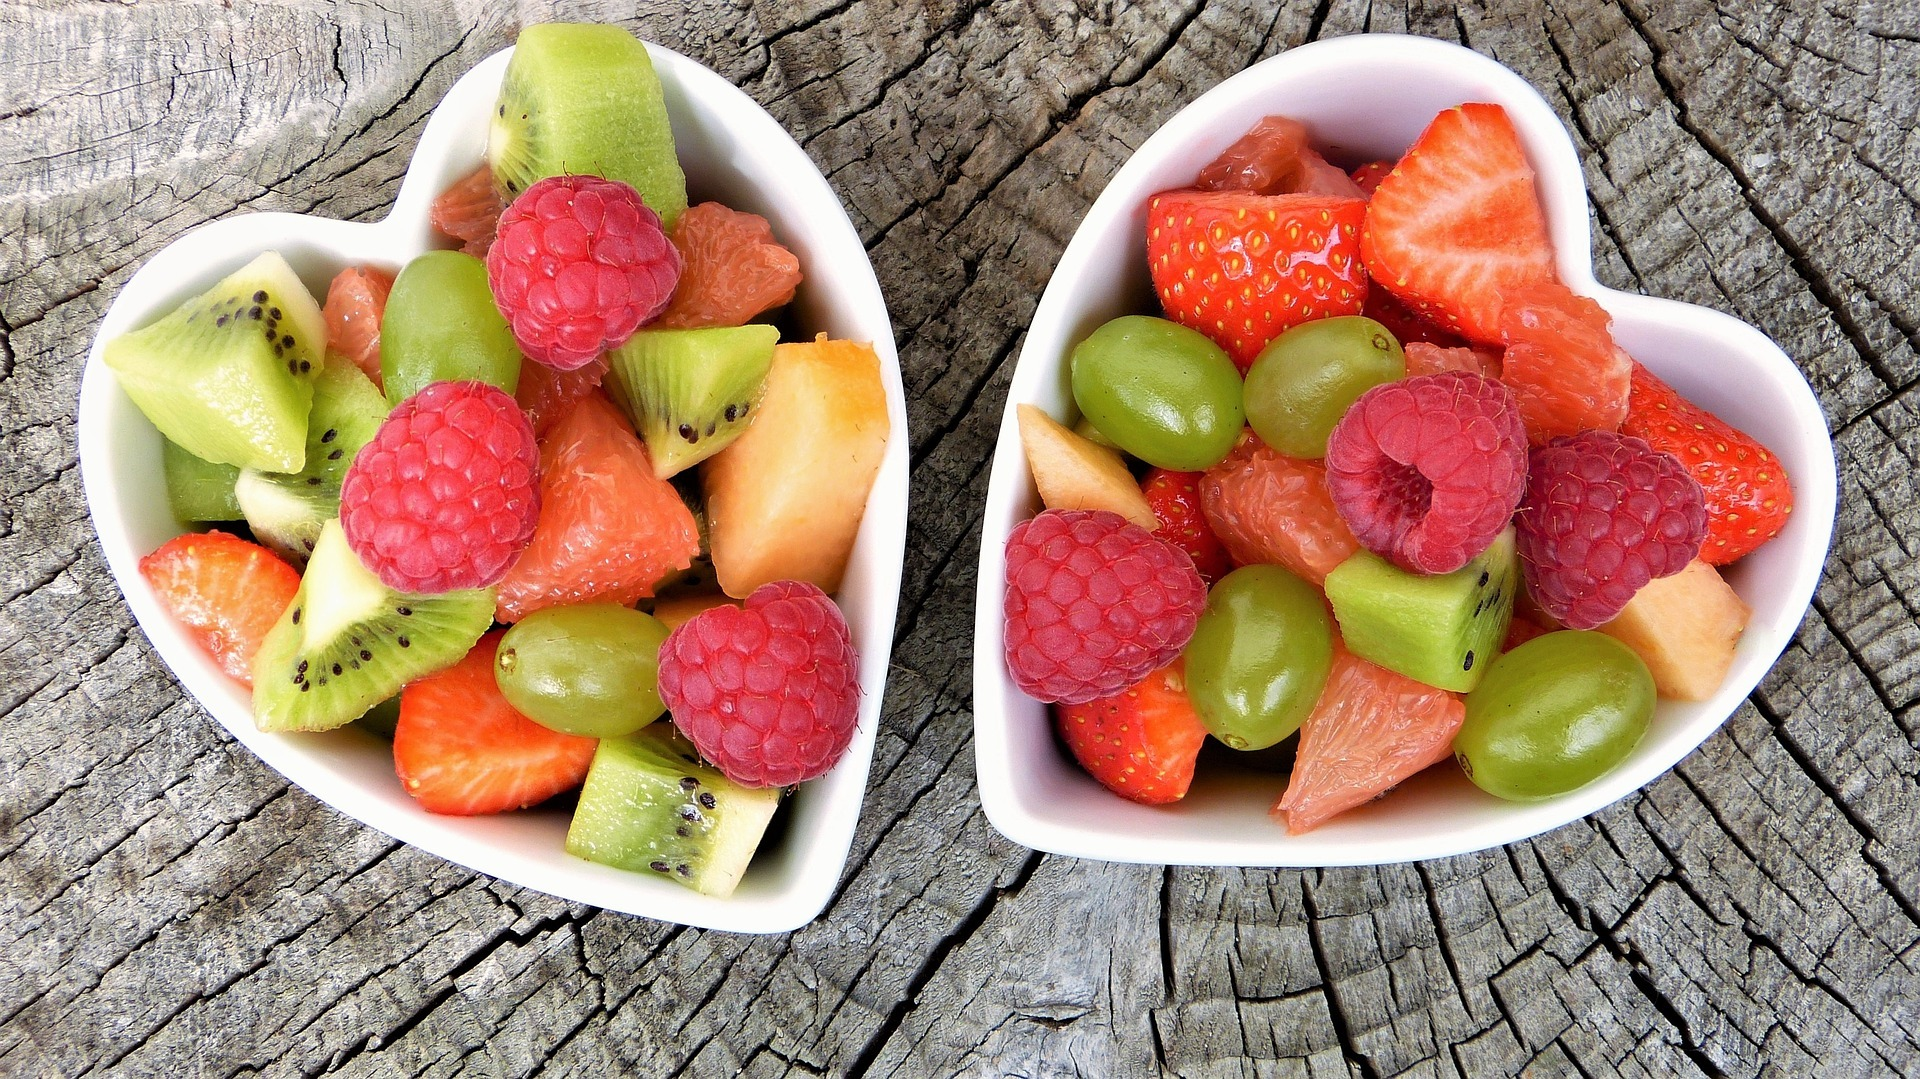 Fruits contain lots of vitamins, and are a great alternative to sugar